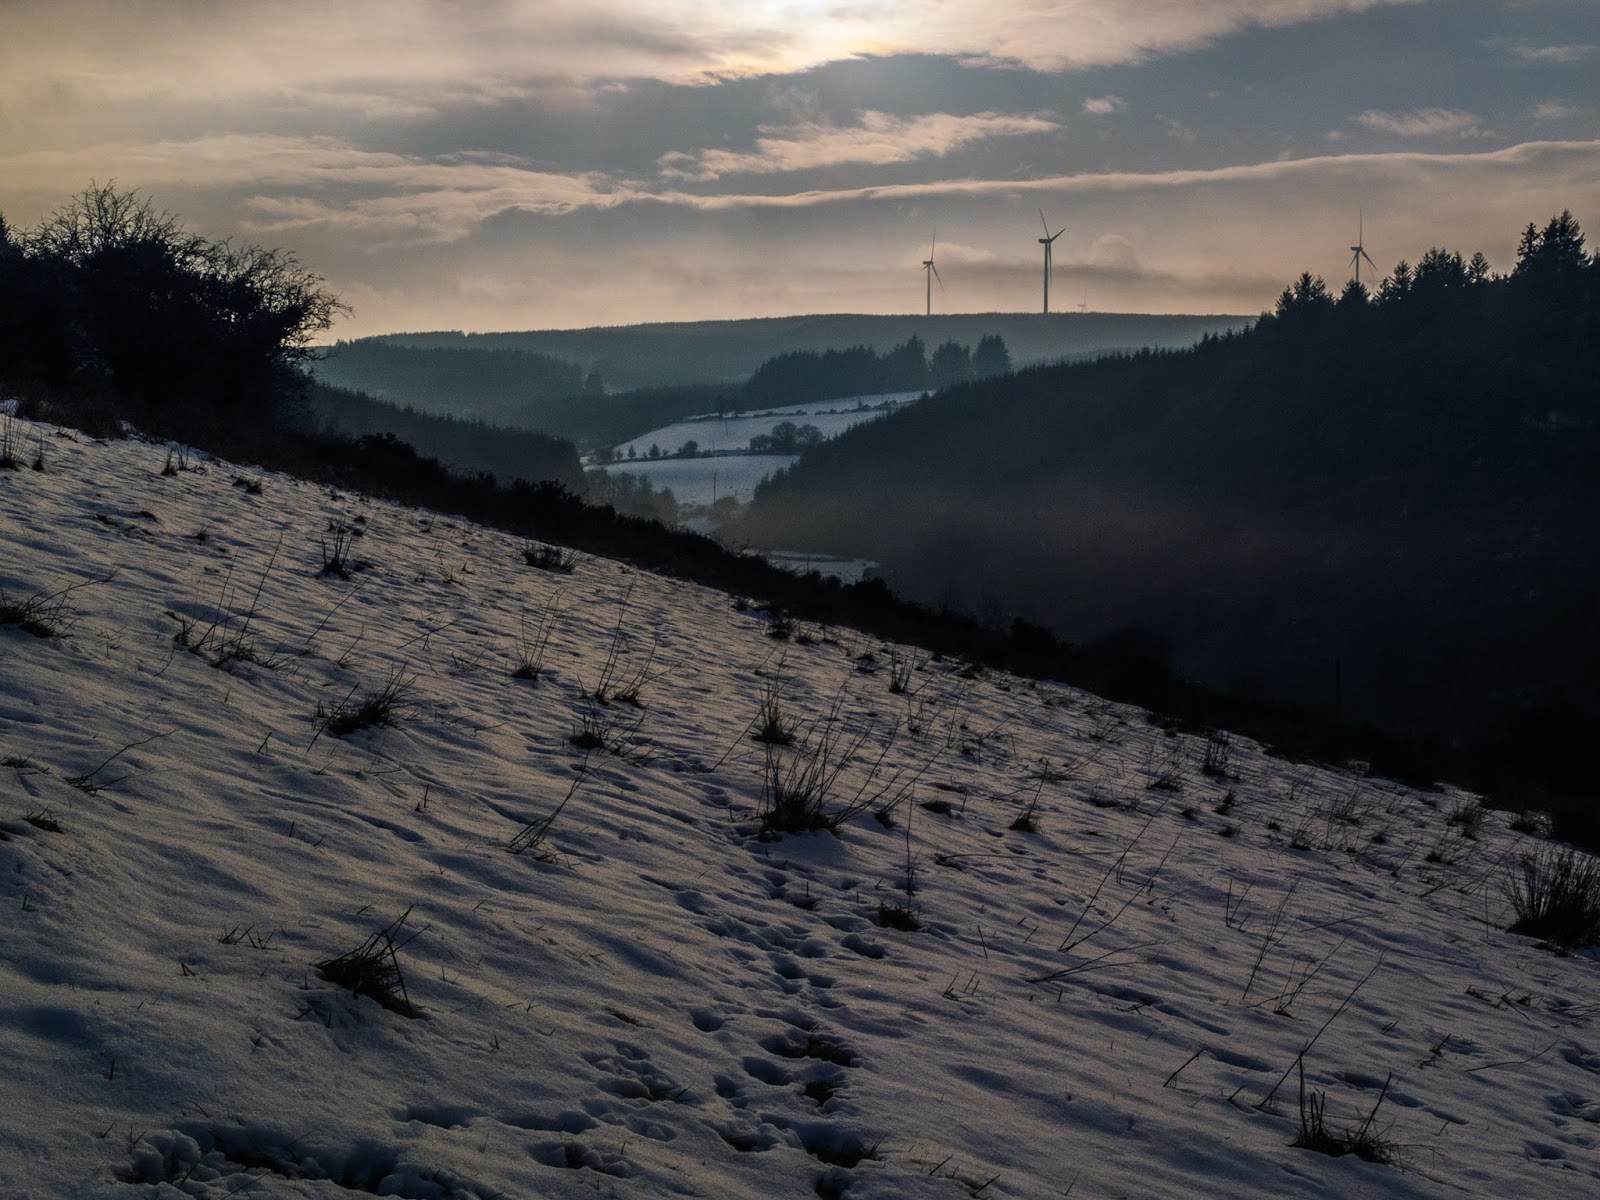 Snowy mountains and forestry before the sunset in the Boggeragh Mountains in Co.Cork.